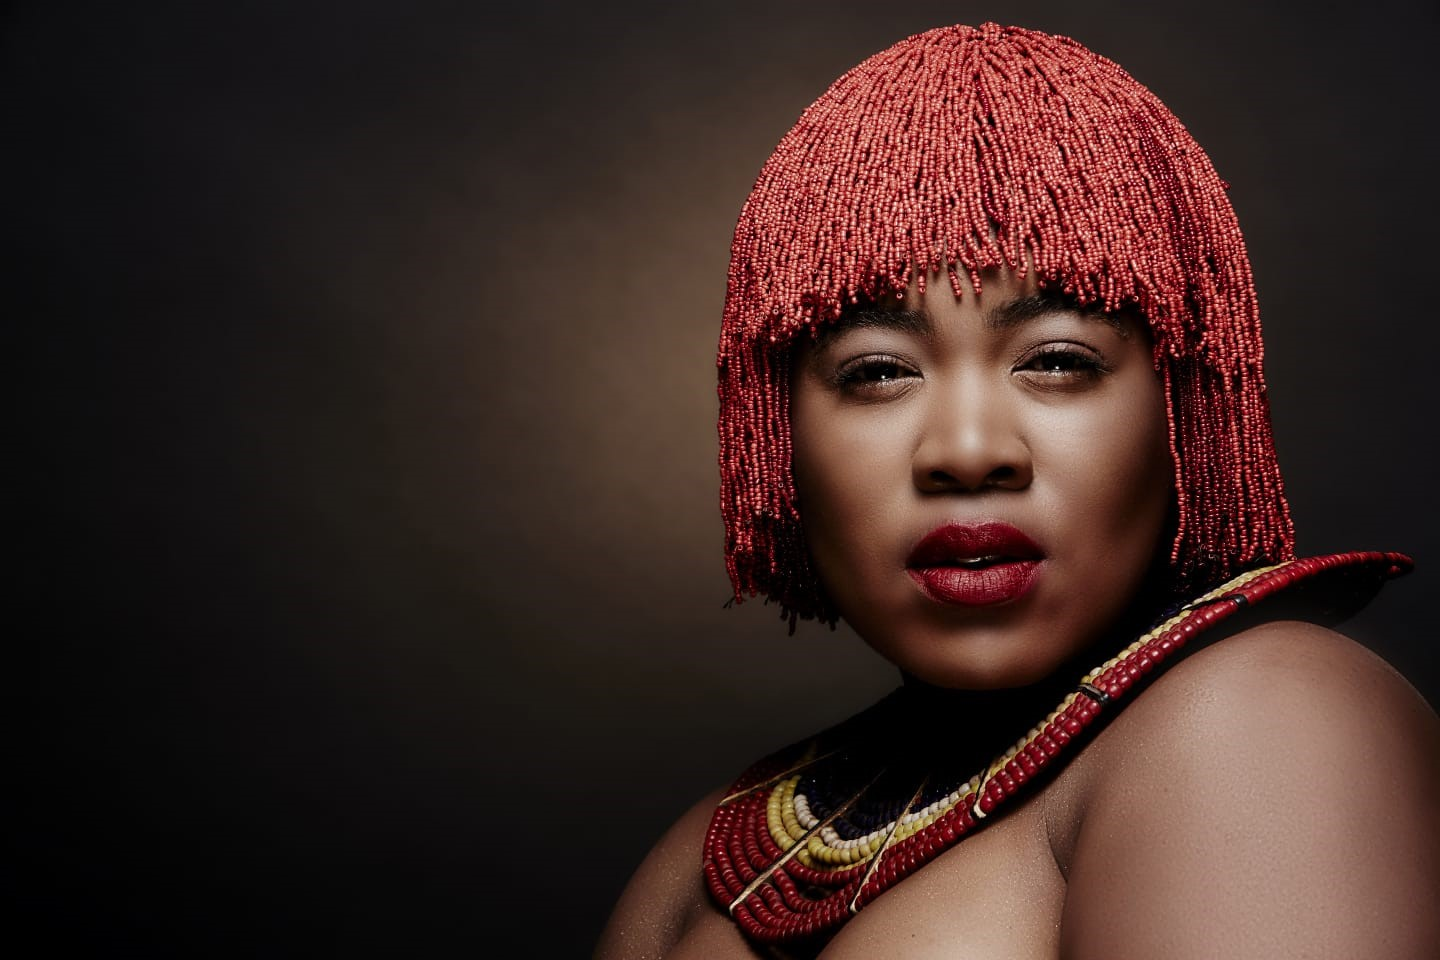 Thandiswa Mazwai in Concert